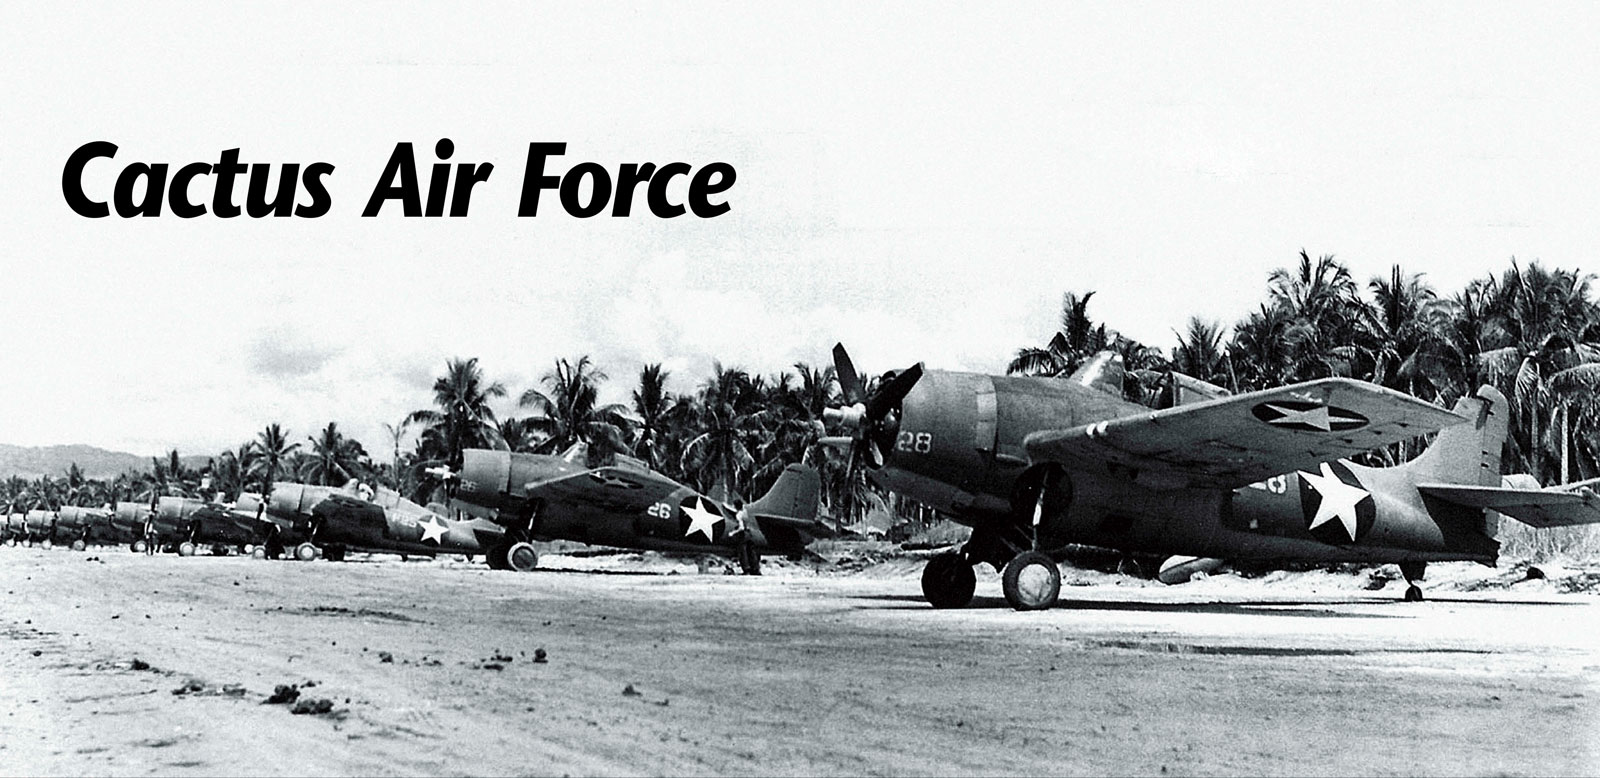 Grumman F4F 3 Wildcats White 28 and 26 lined up along the strip Henderson Field Guadalcanal Jan 1943 02